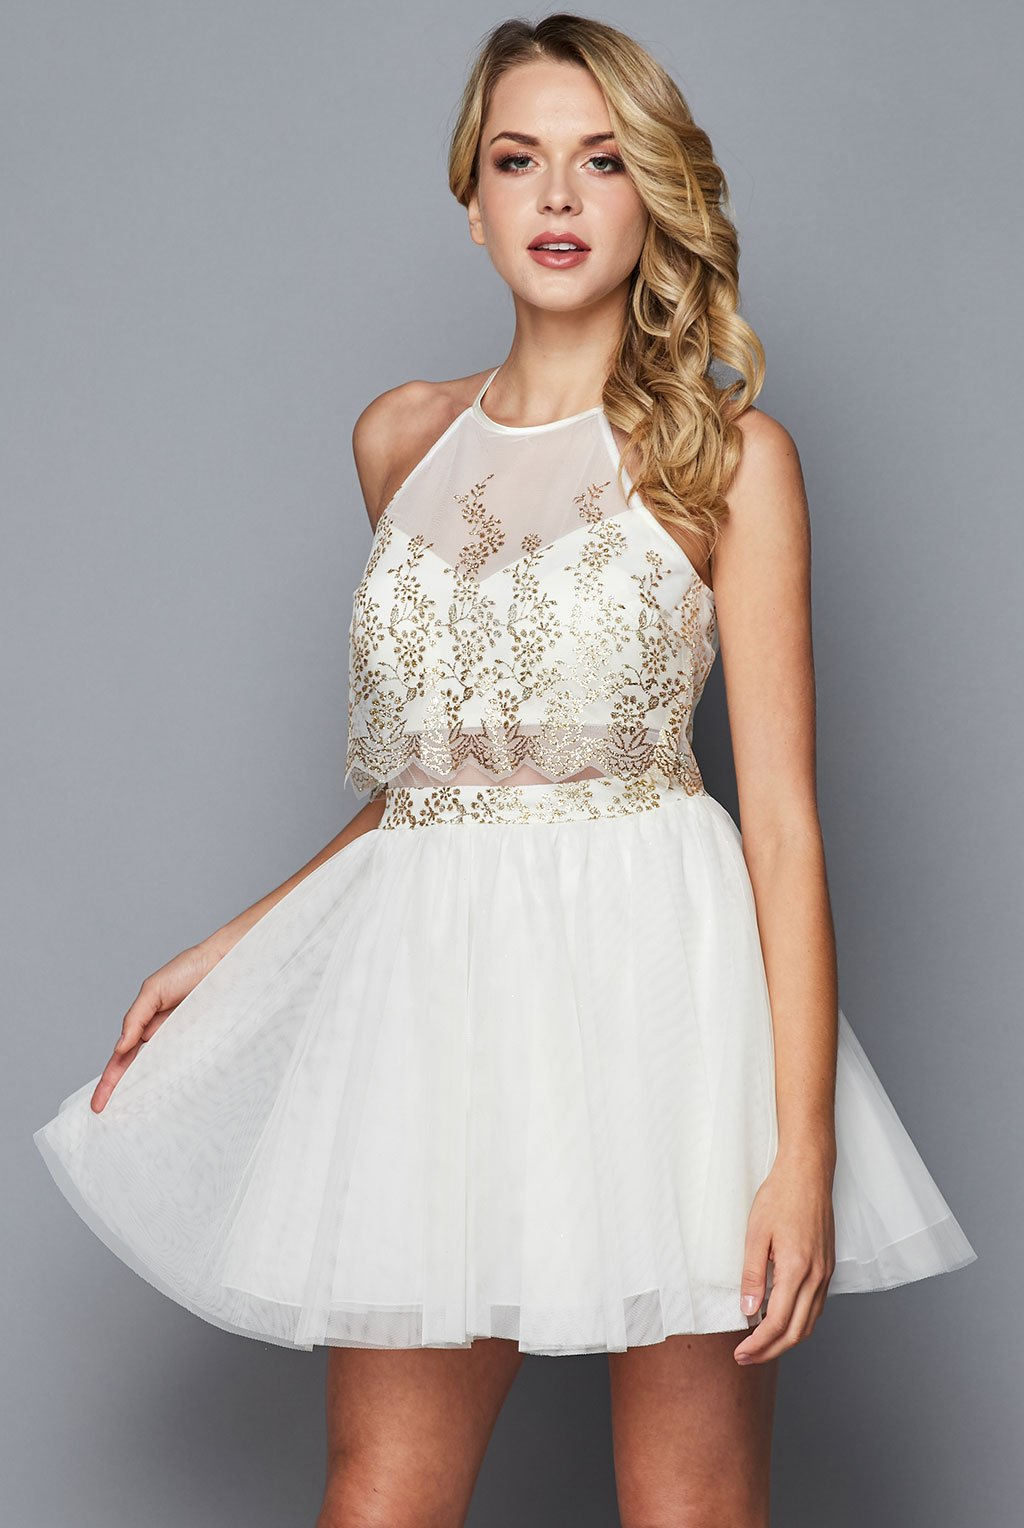 Teeze Me | Halter Glitter Illusion Party Dress | Ivory/Gold